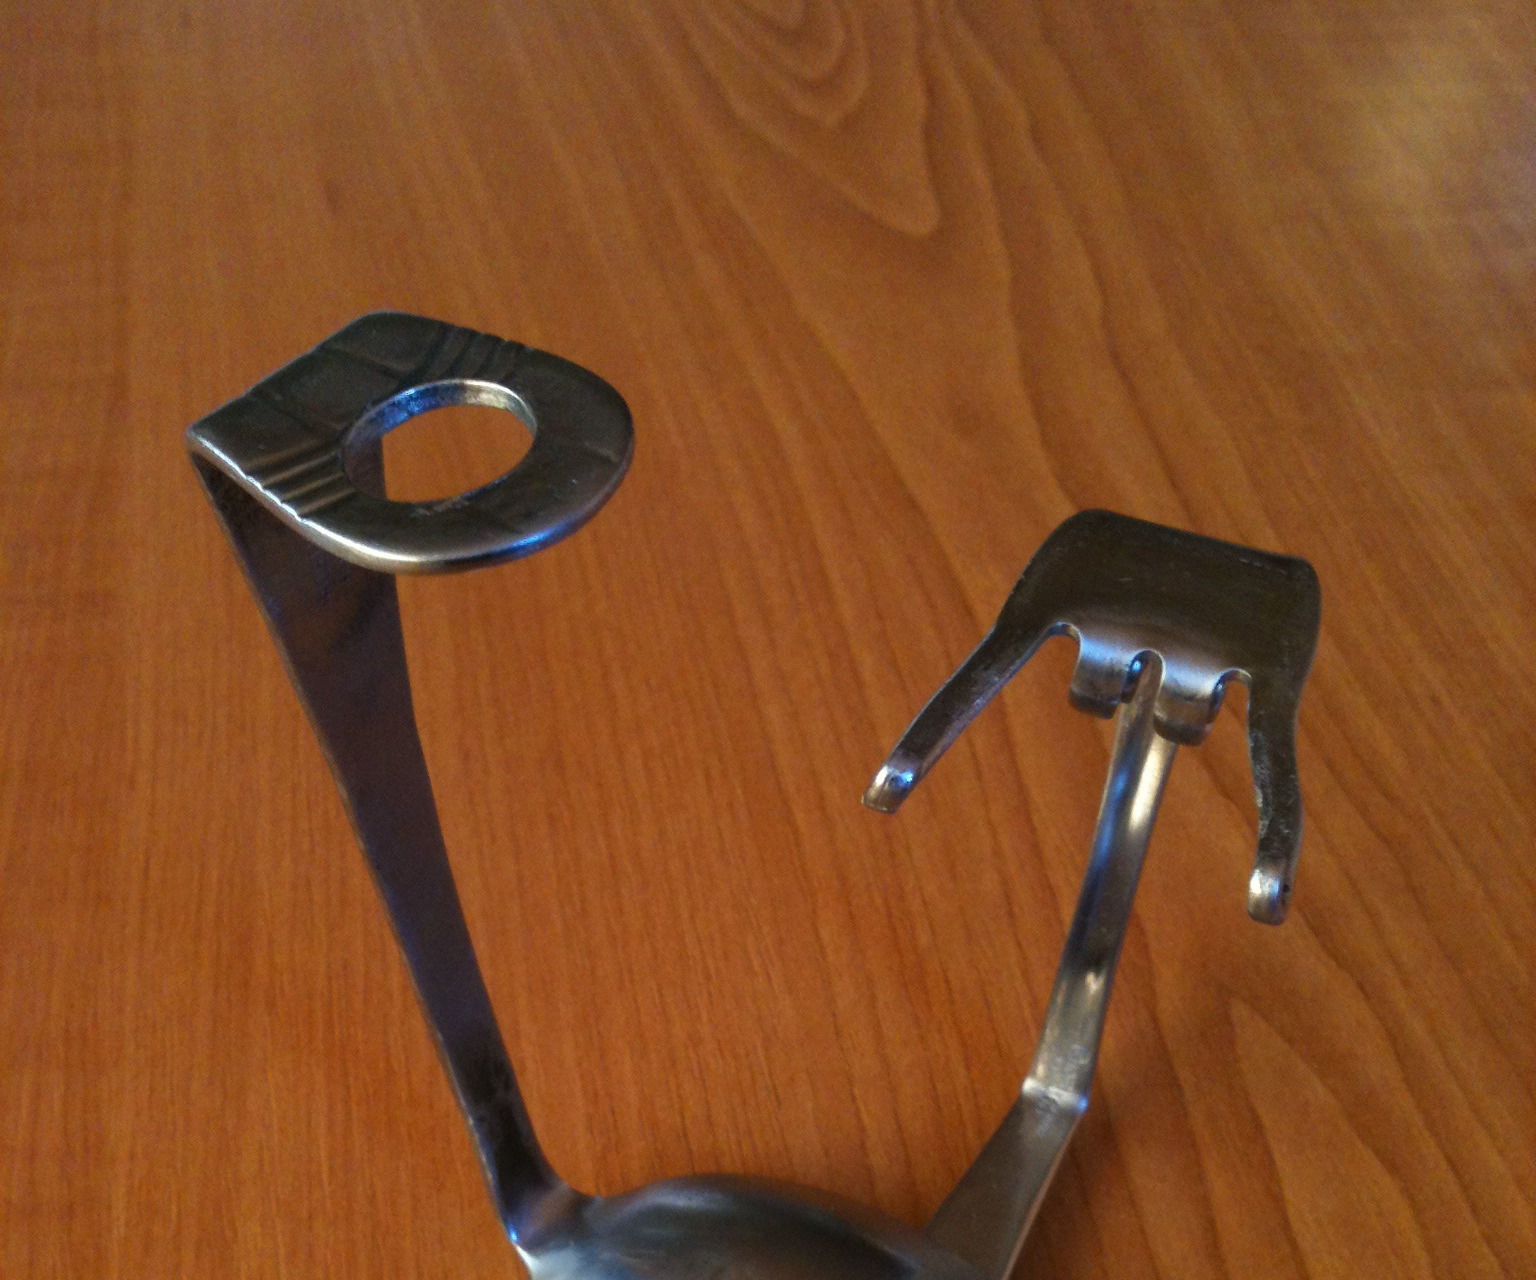 Razor Stand From Spoon and Fork and Spiced With Magnet